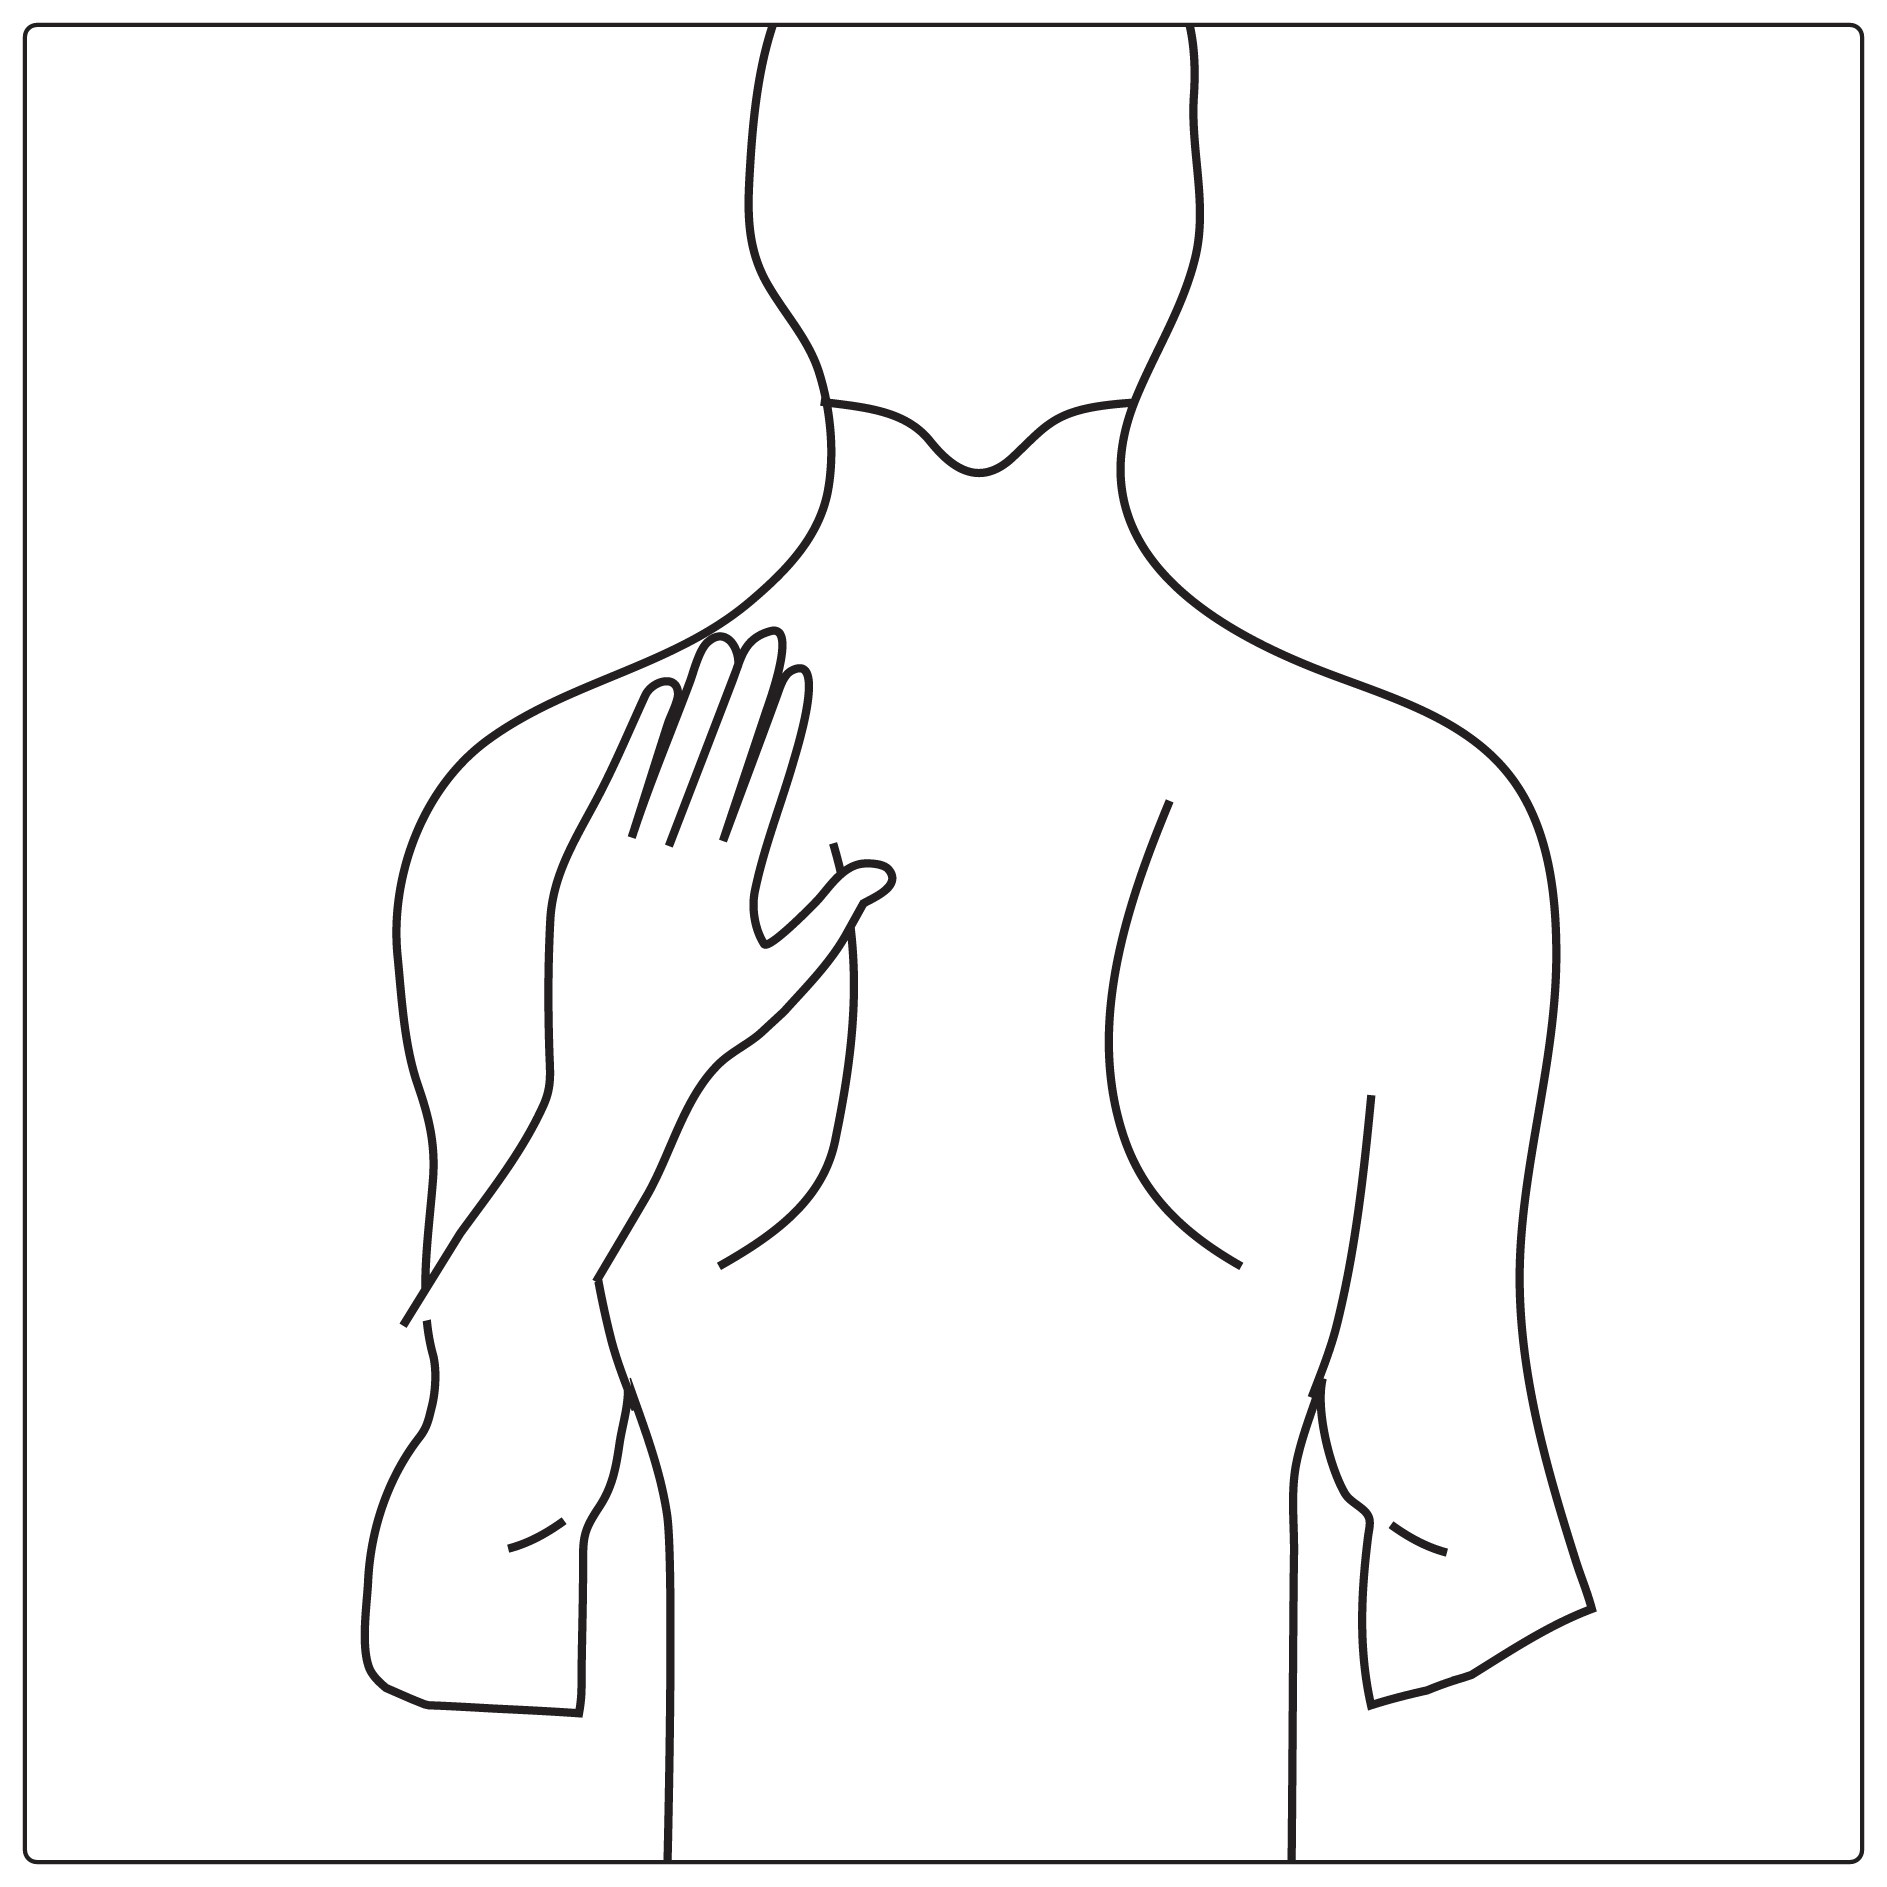 Press the transdermal patch against the skin